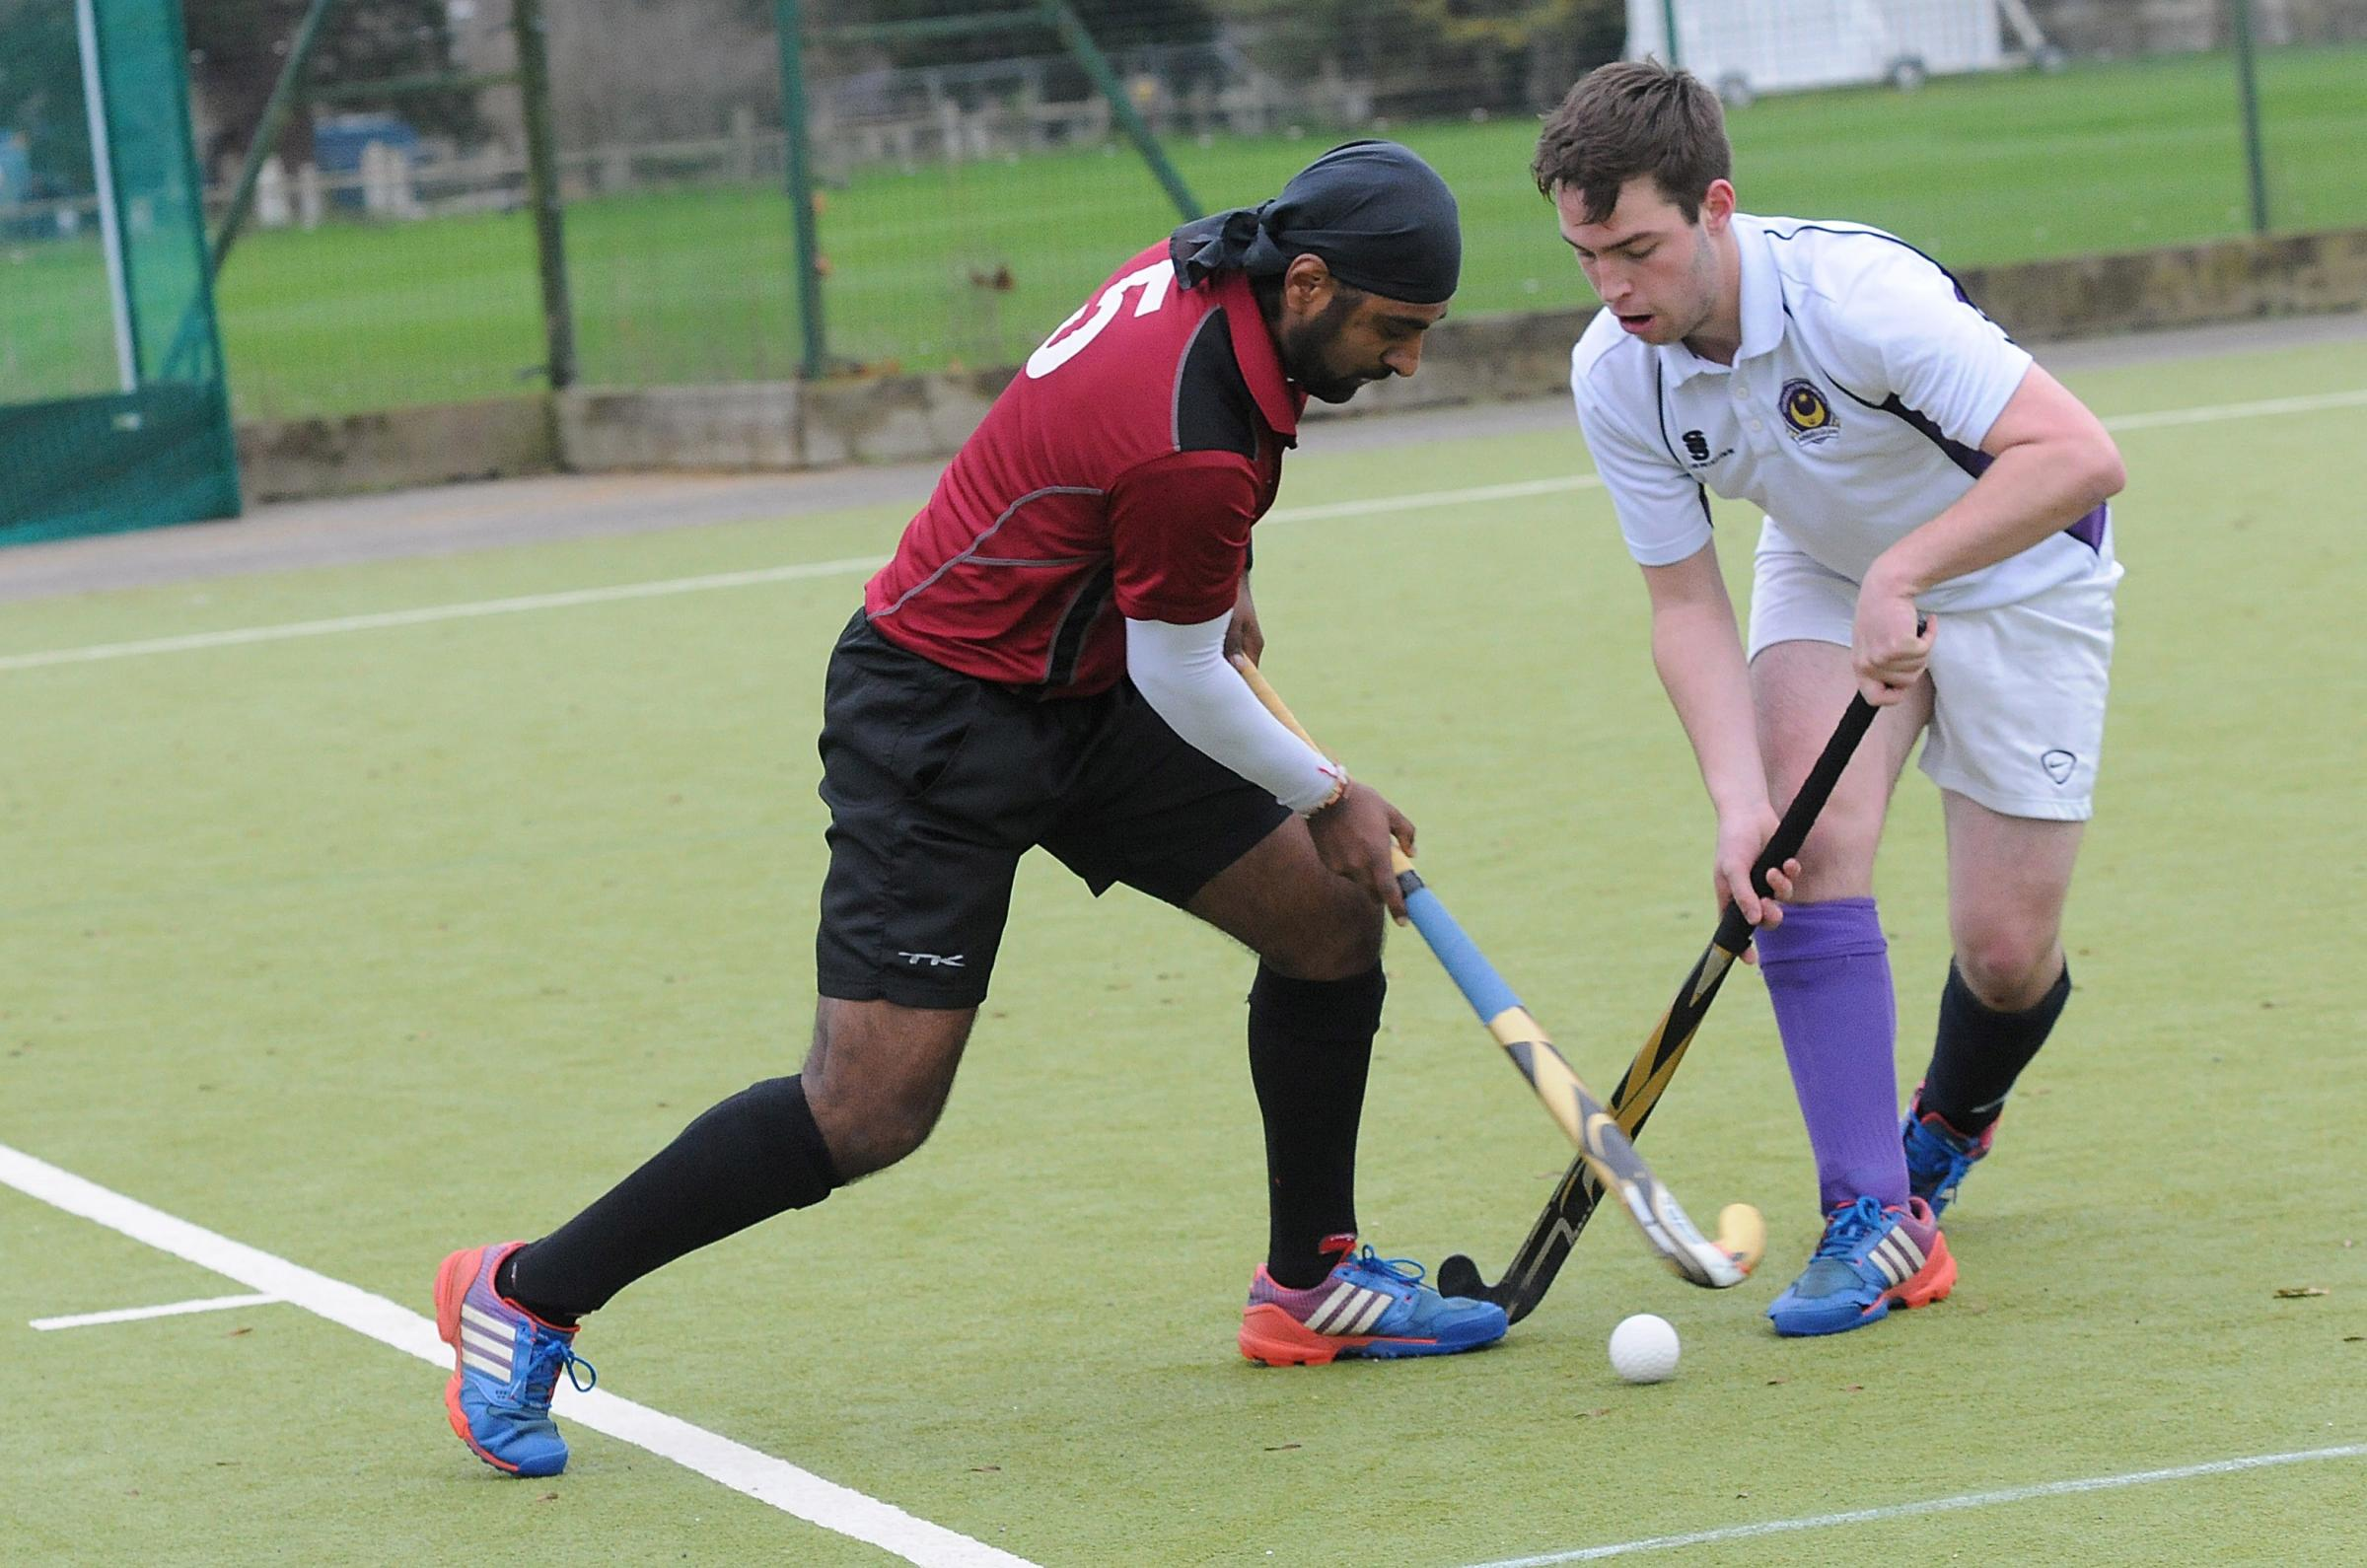 Salisbury Mens Hockey 1st Team vs University of Portsmouth at the Lower Bemerton pitch. DC6920P4..Picture by Tom Gregory. Jagjit Marwaha